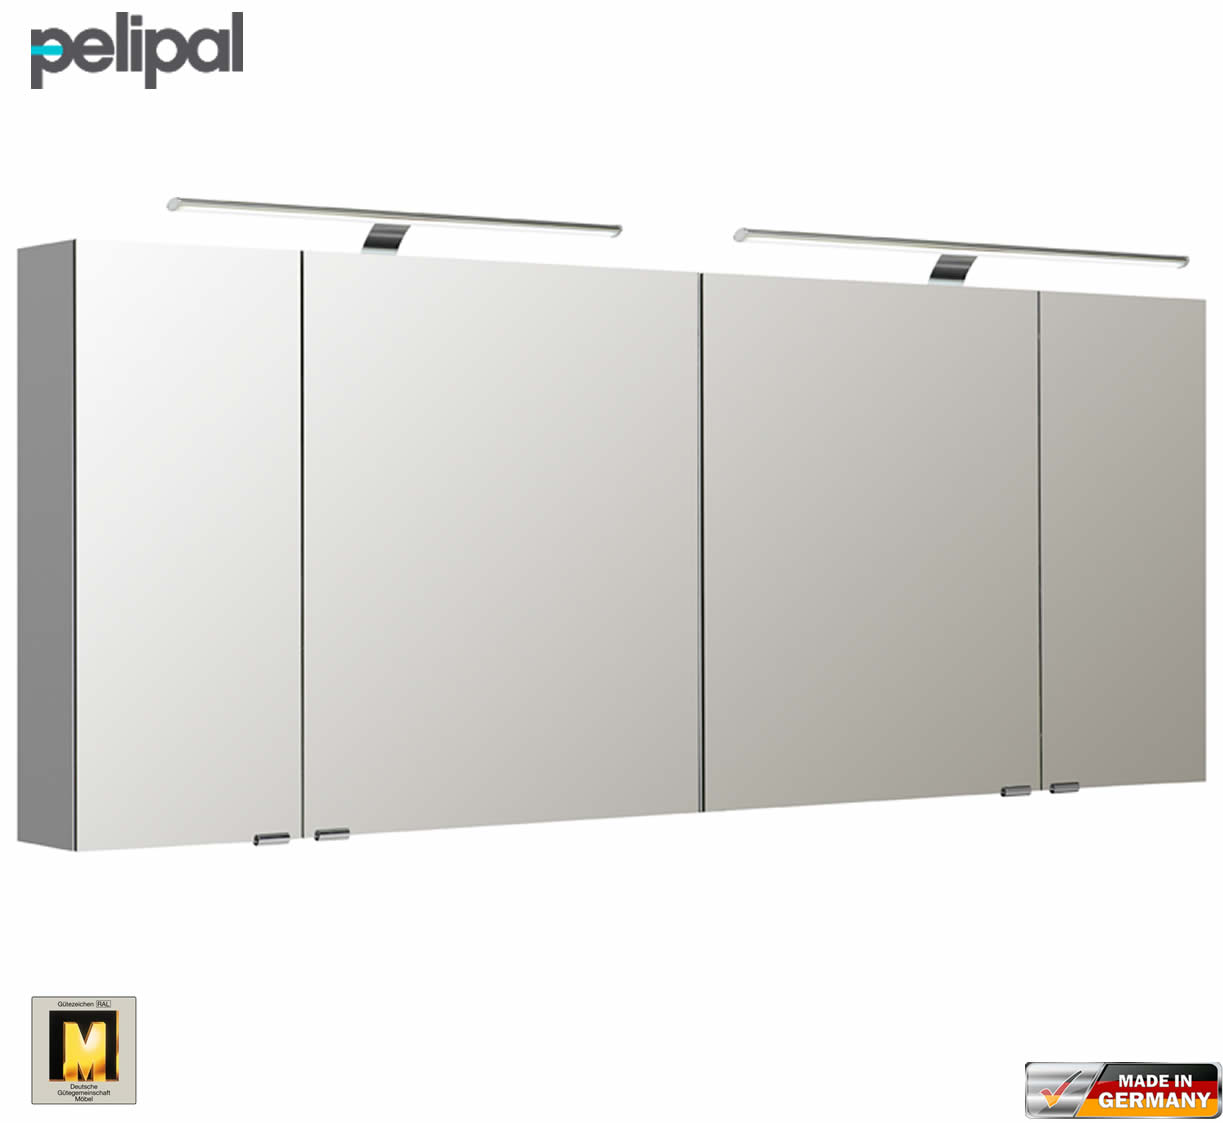 pelipal neutraler spiegelschrank s5 180 cm mit 2 led. Black Bedroom Furniture Sets. Home Design Ideas